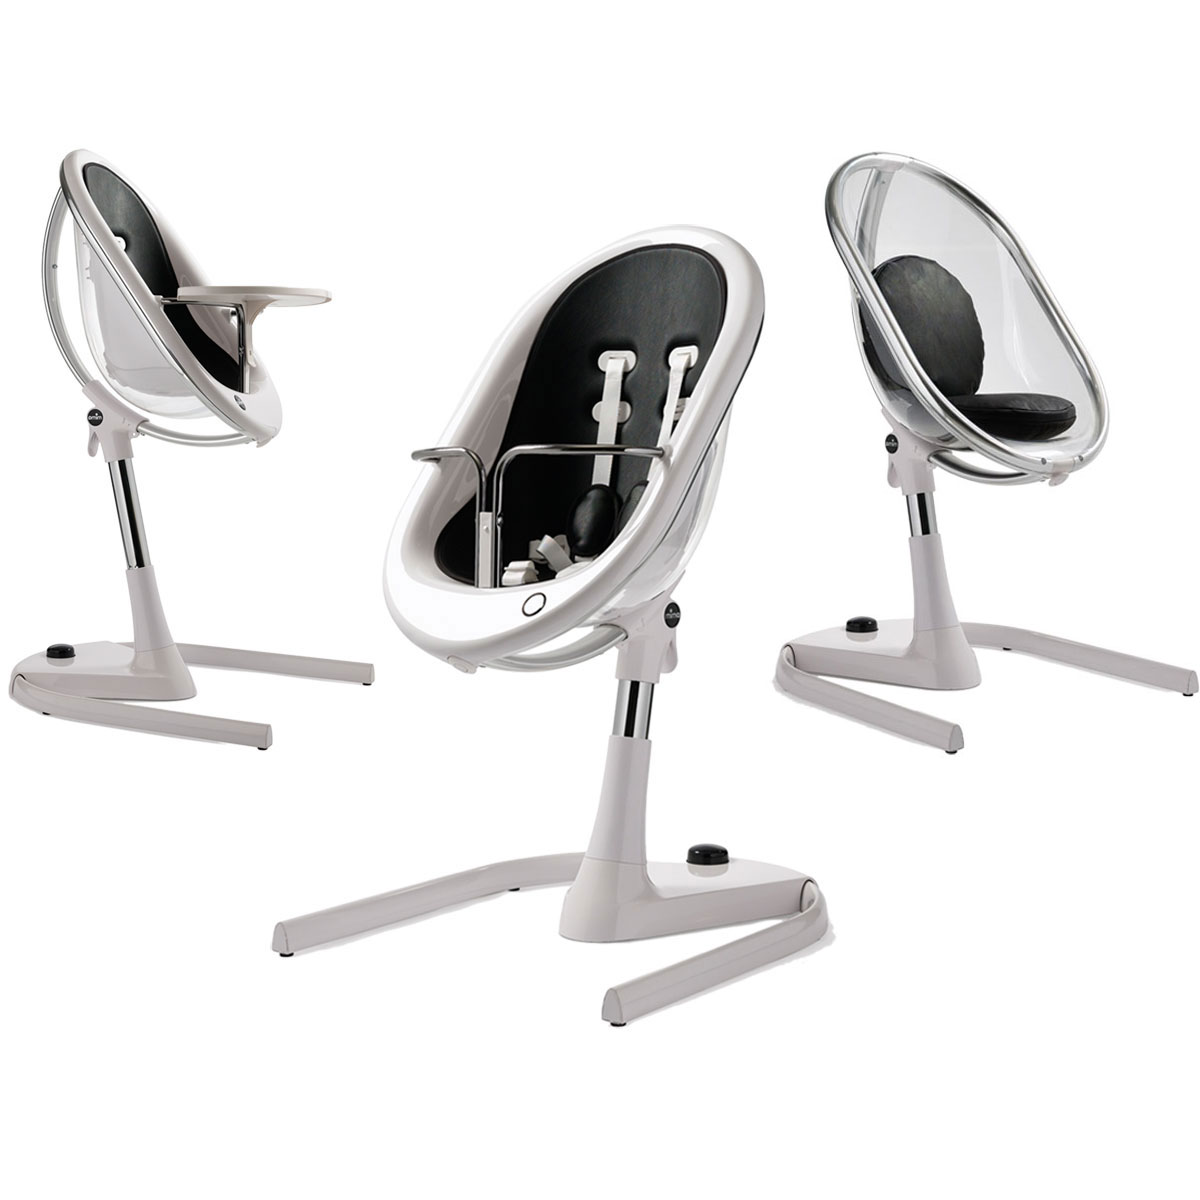 Comment choisir sa chaise haute sur - Chaise haute safety first baby relax ...